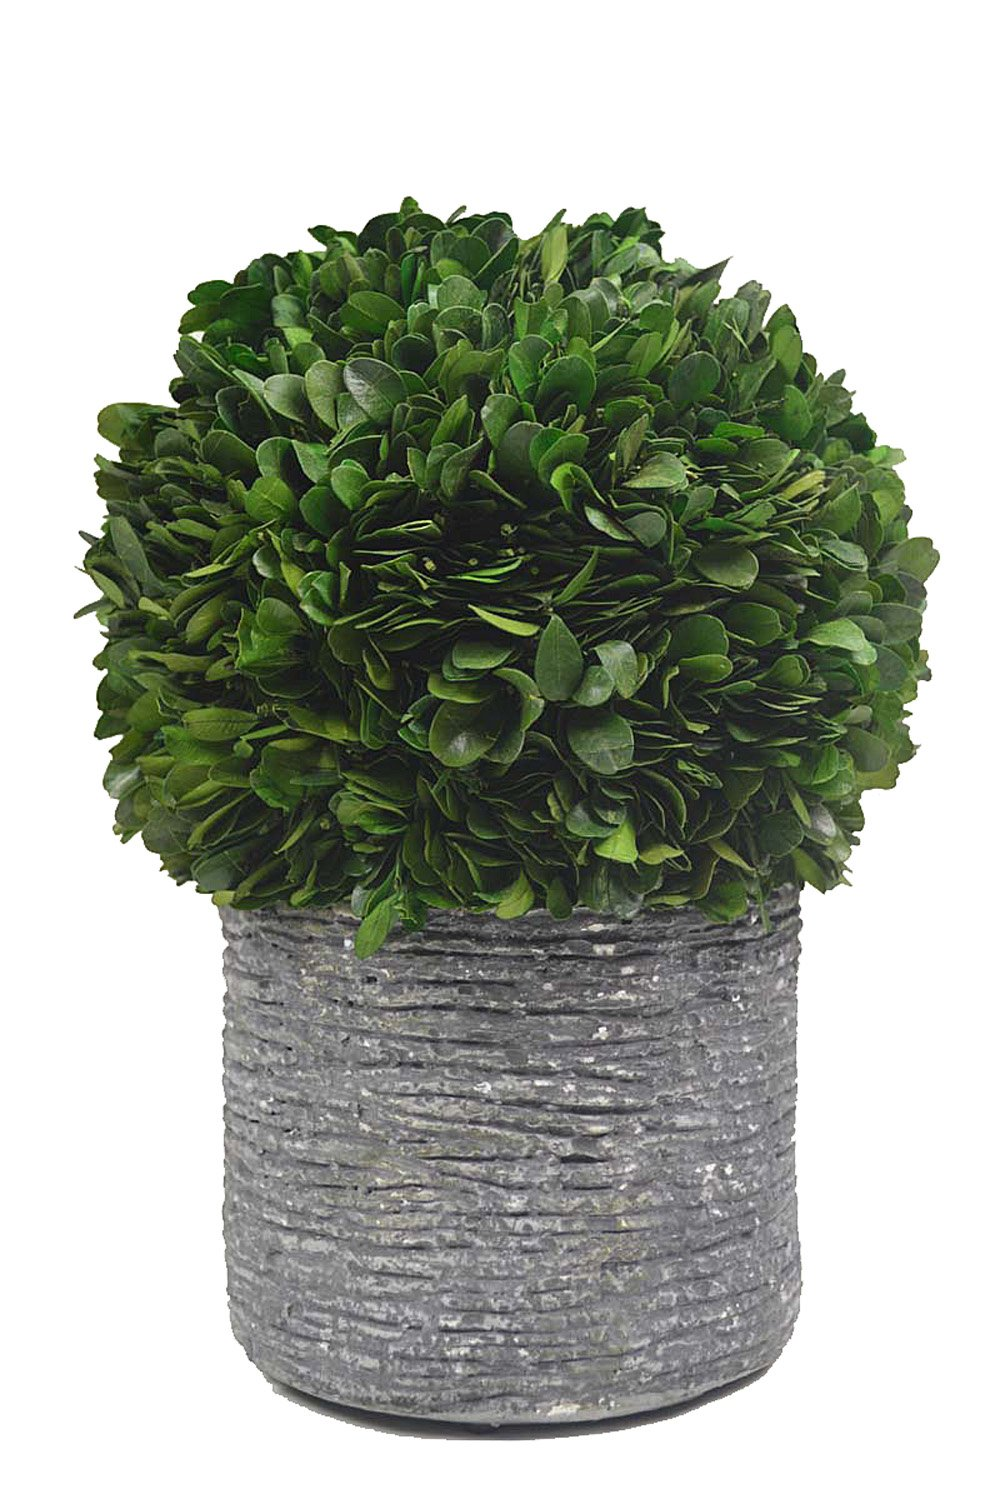 Galt International Topiary Plant with Decorative Pot, 10-Inches Naturally Preserved Real Boxwood by Galt International